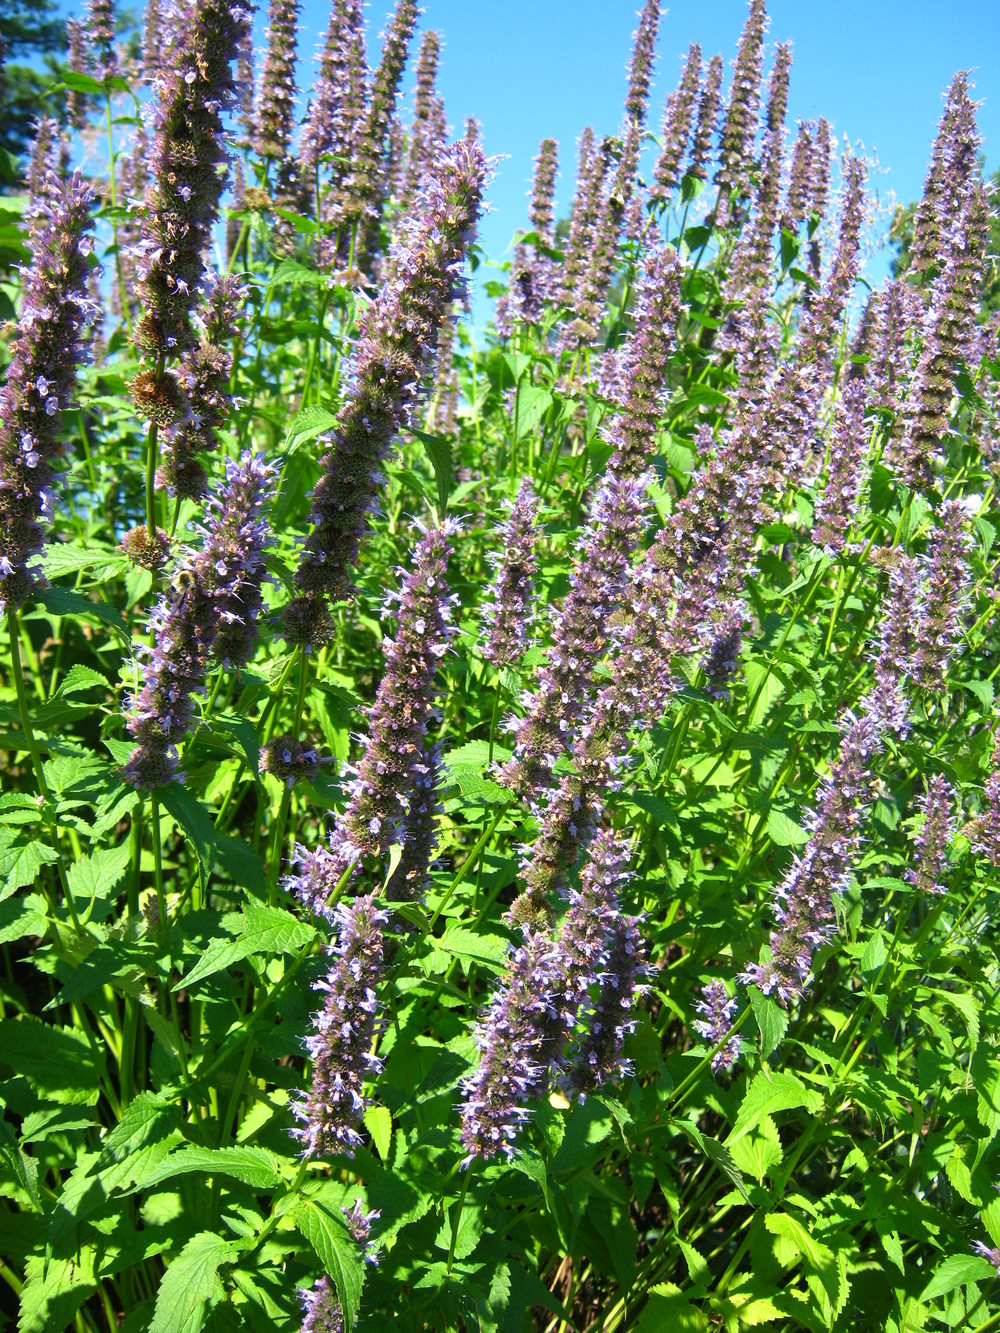 Agastache  'Black Adder'	Giant Hyssop 'Black Adder'